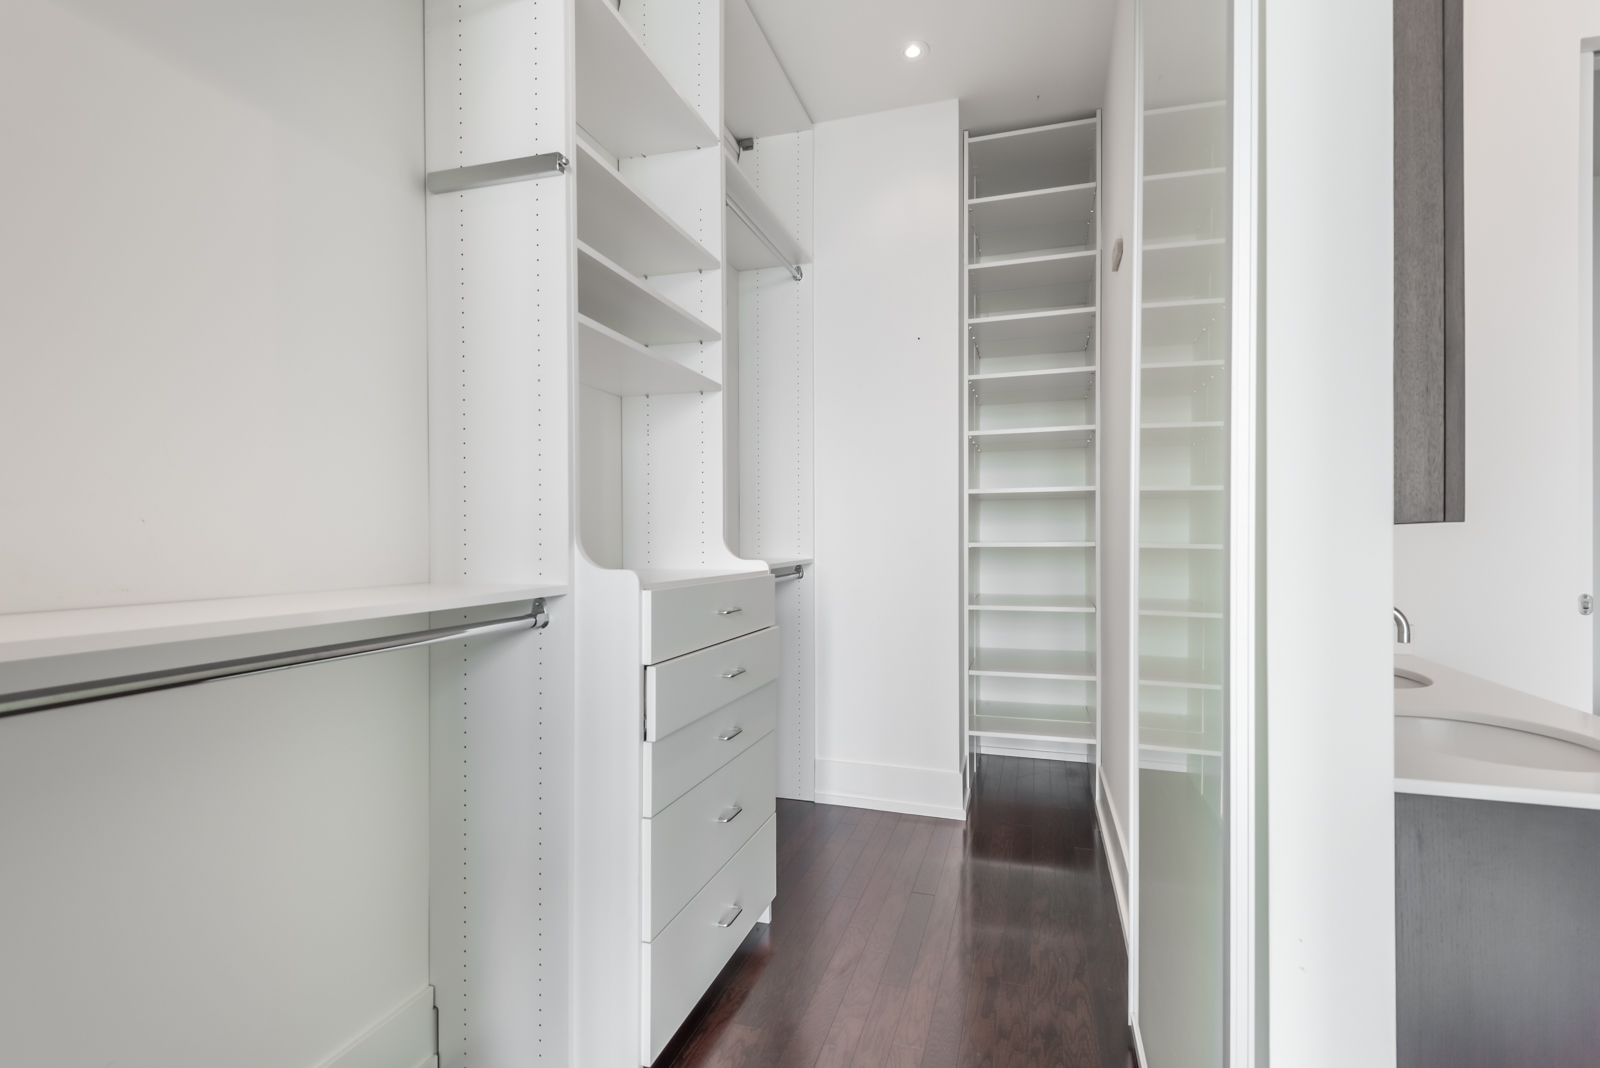 Pic of closet and storage.